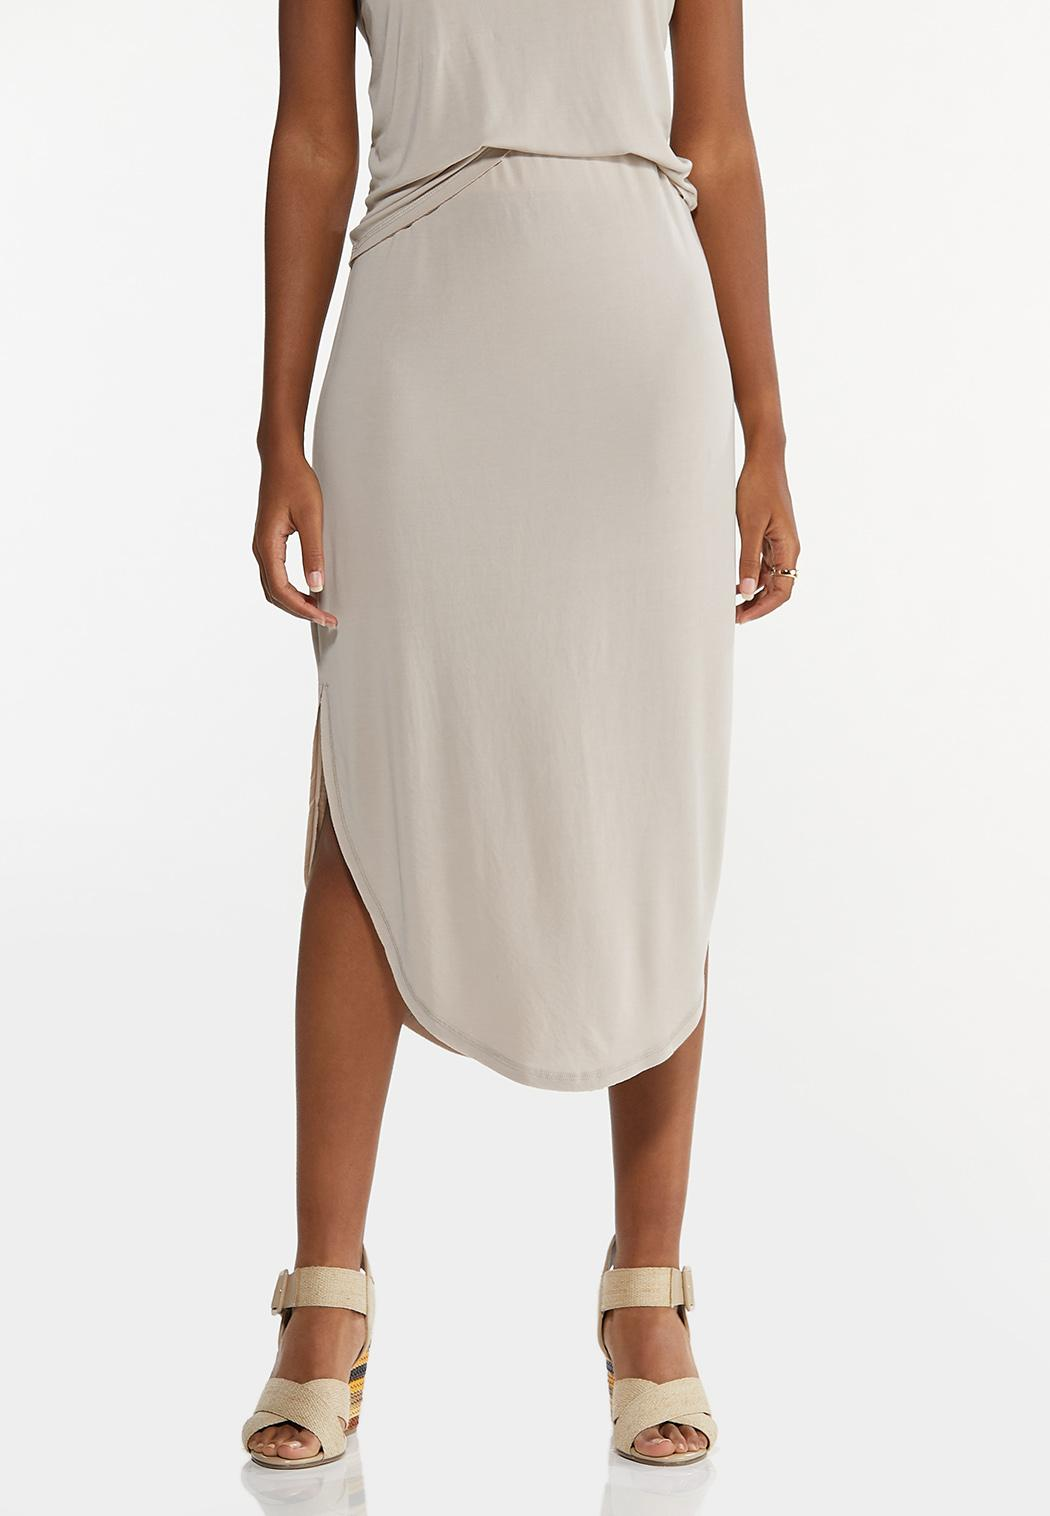 Plus Size Silky Seamed Skirt